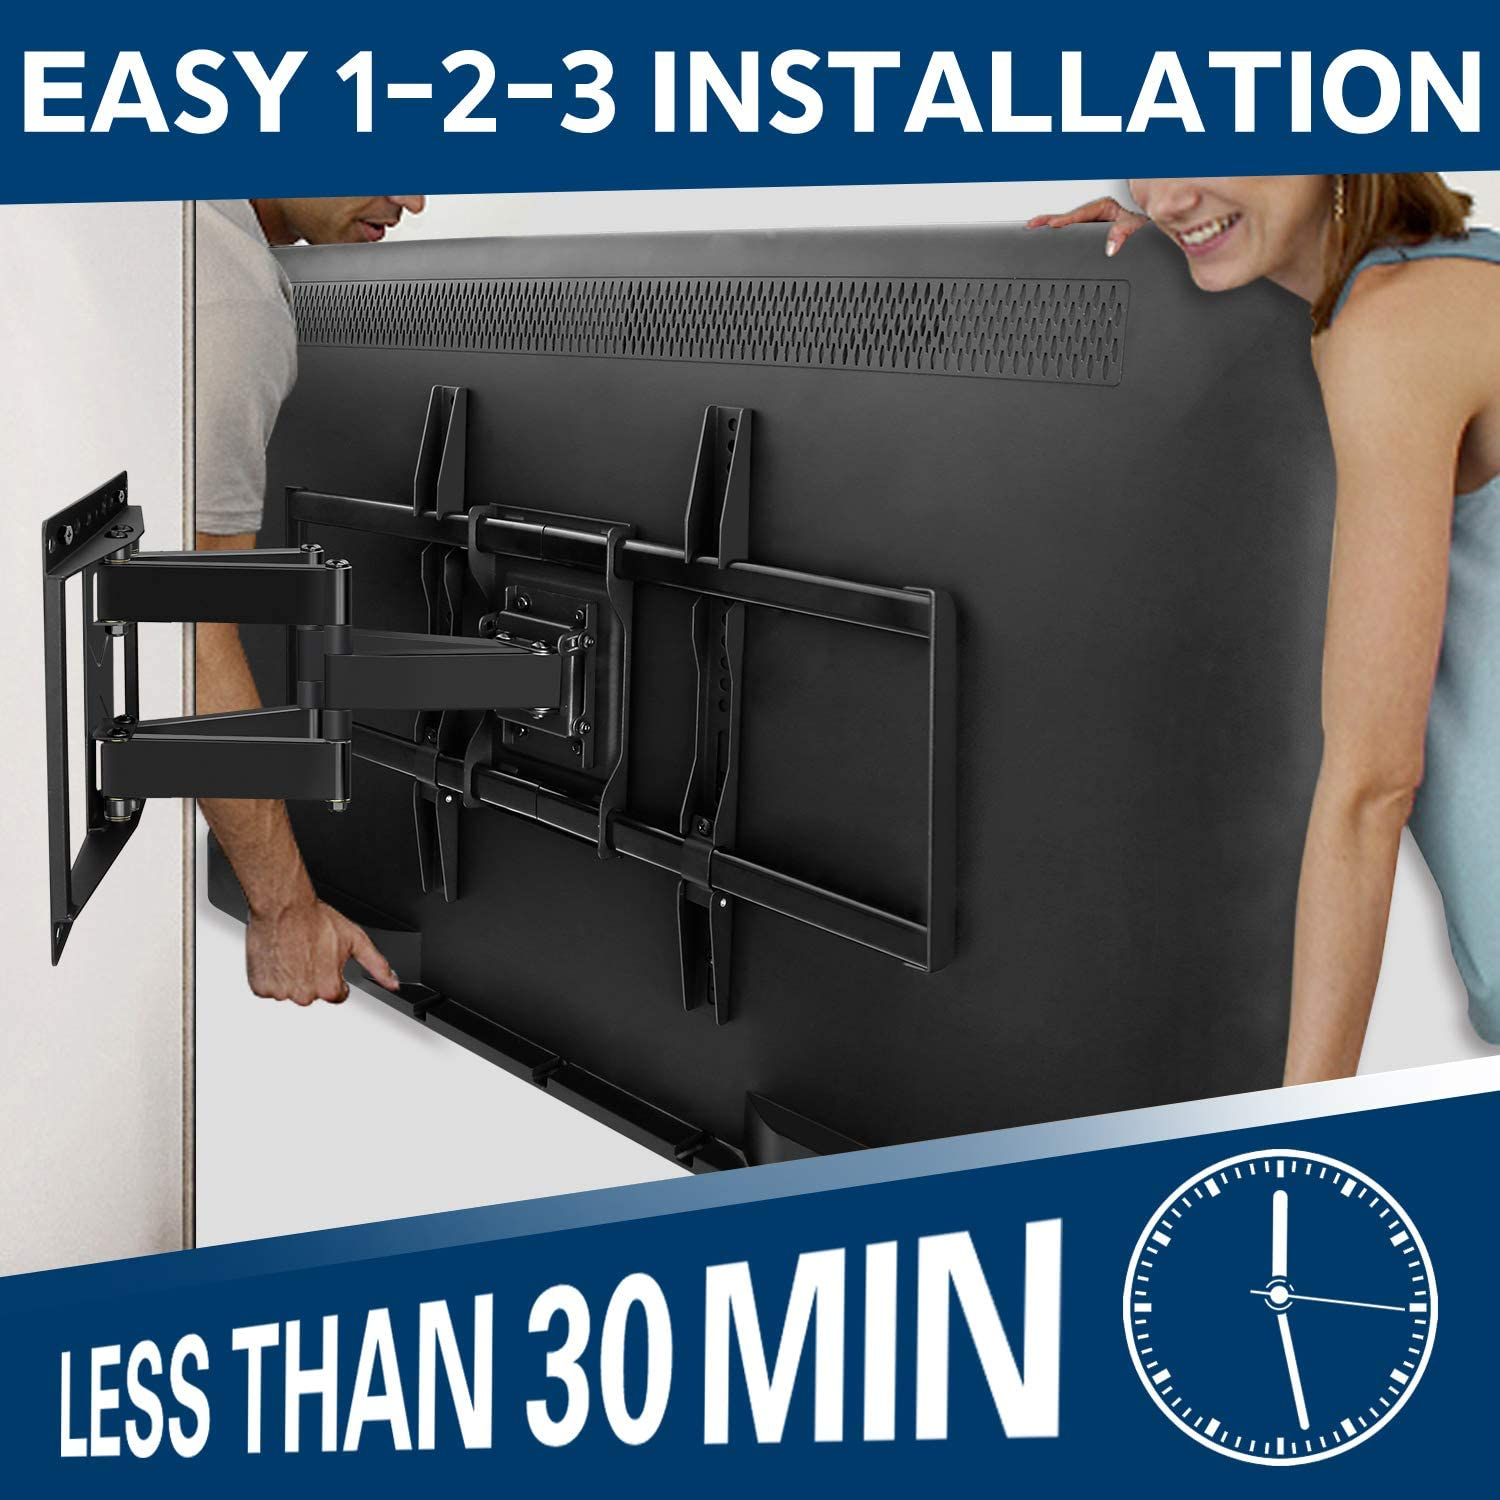 Mounting Dream TV Mount Bracket for 42-70 Inch Flat Screen TVs, Full Motion TV Wall Mounts with Swivel Articulating Dual Arms, Heavy Duty Design - Max VESA 600x400mm, 100 LBS Loading, MD2296